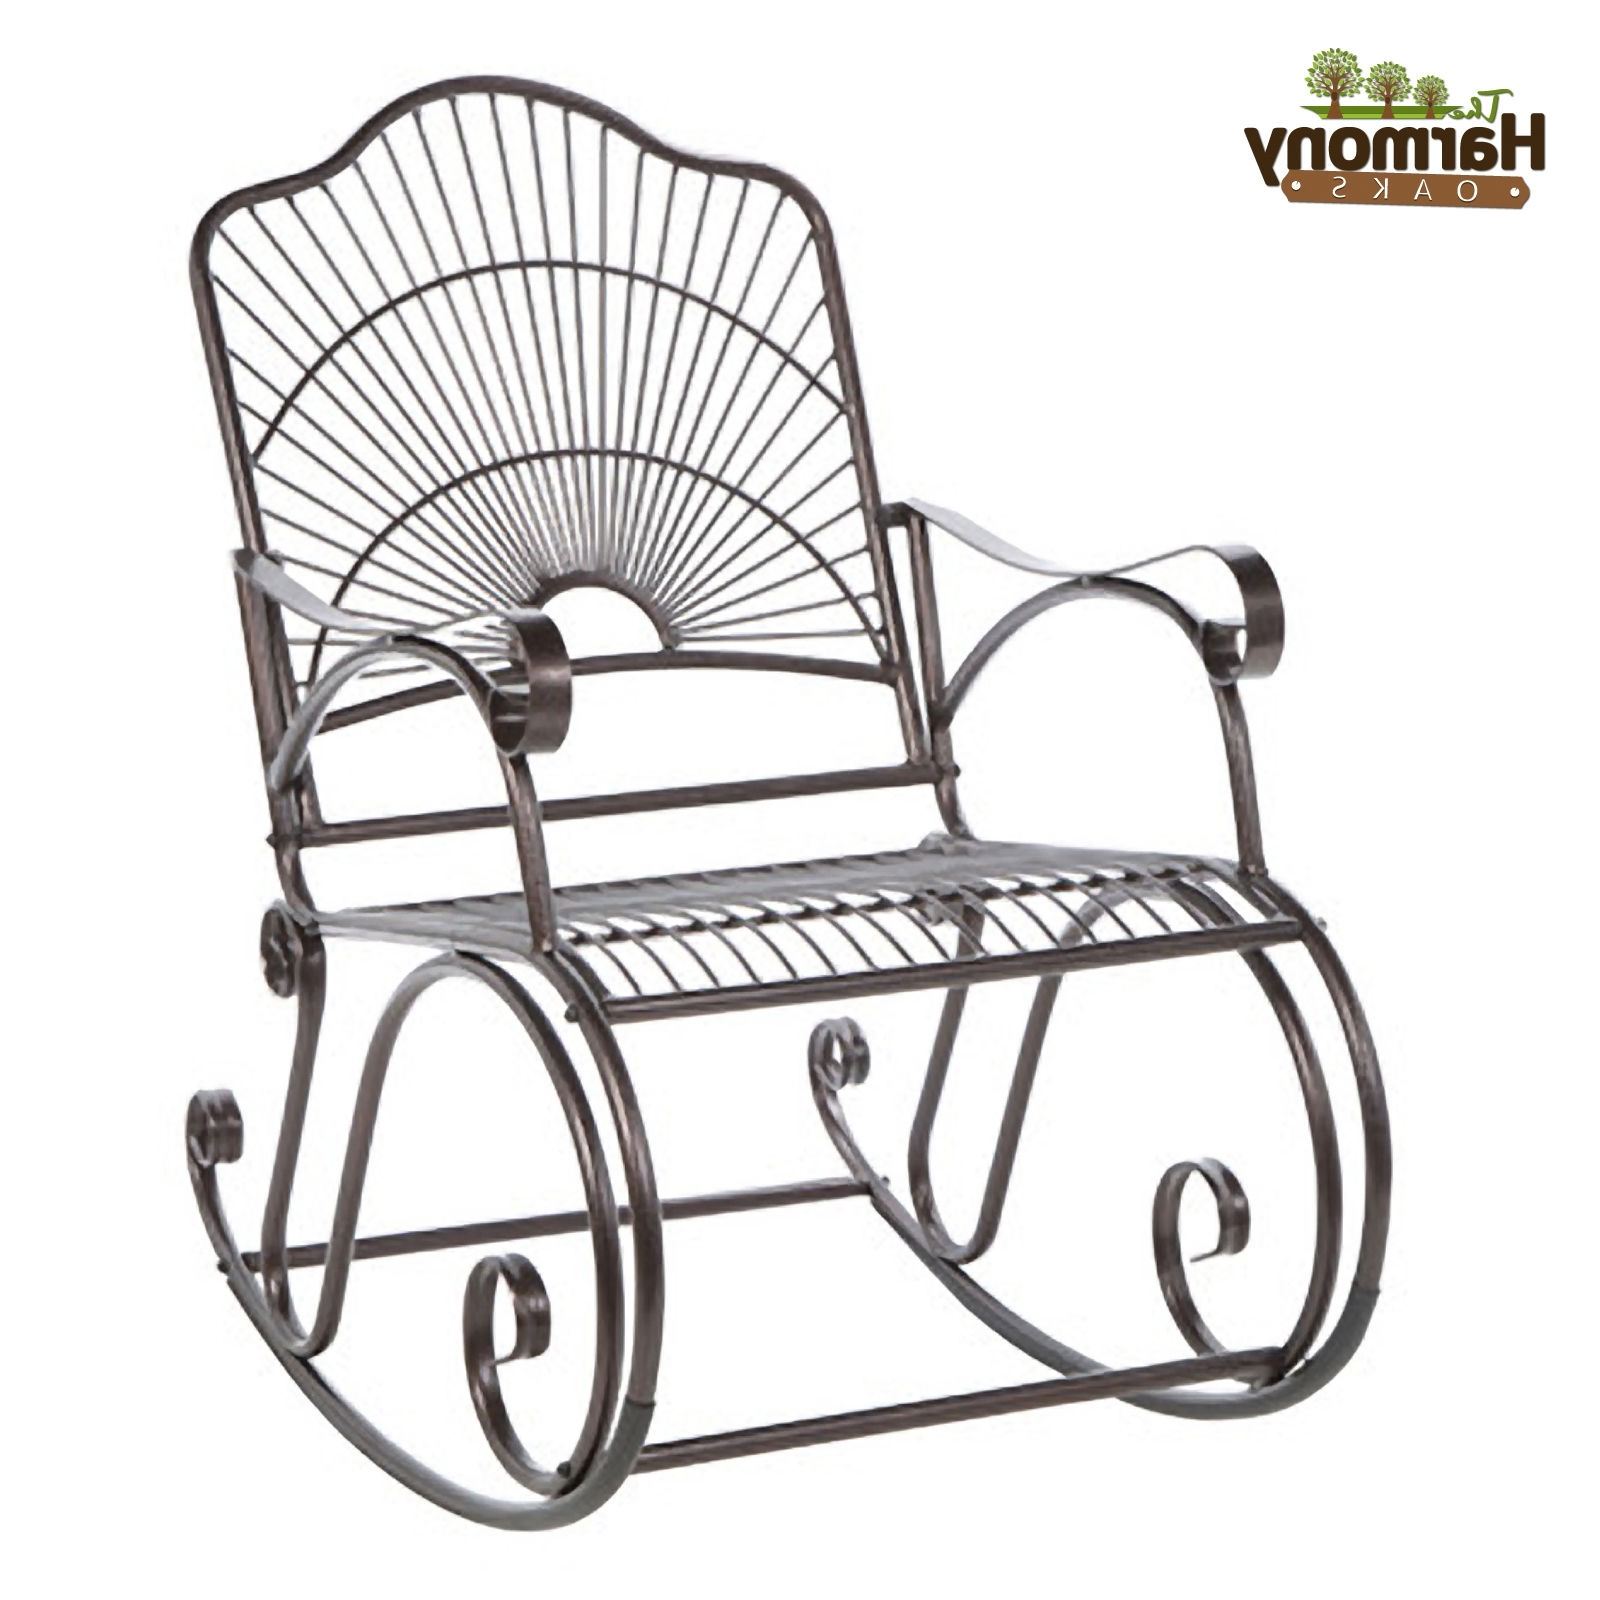 Iron Rocking Patio Chairs Throughout Widely Used Rocker Wrought Iron Outdoor Patio Porch New Furniture Wrought Iron (View 7 of 20)